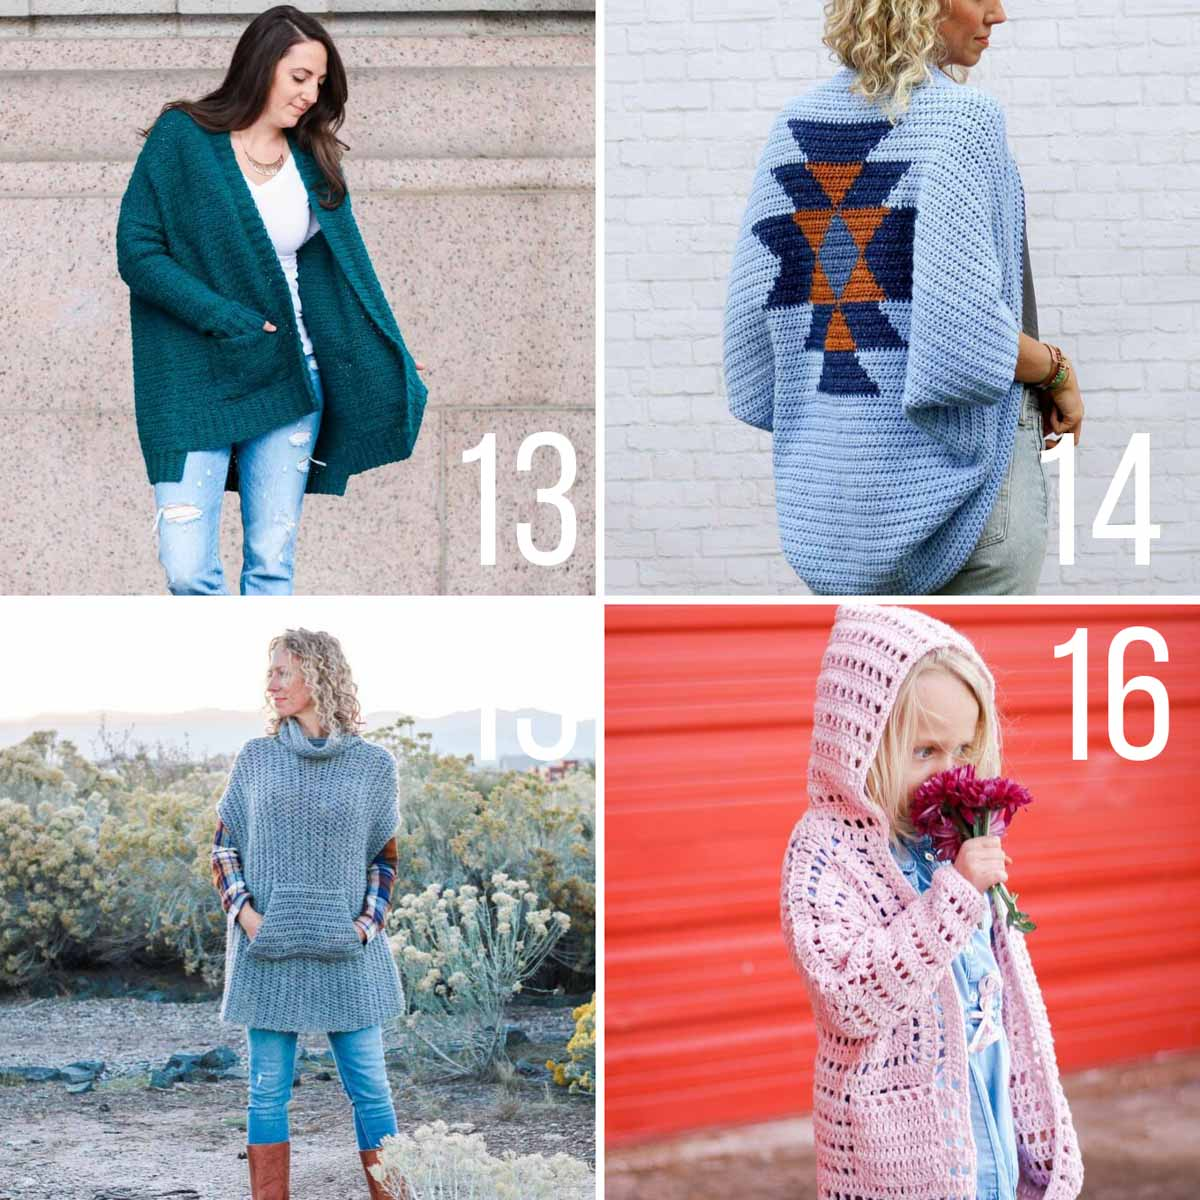 Four free crochet patterns including a cardigan sweater, a shrug, a poncho and a child's hexagon cardigan.